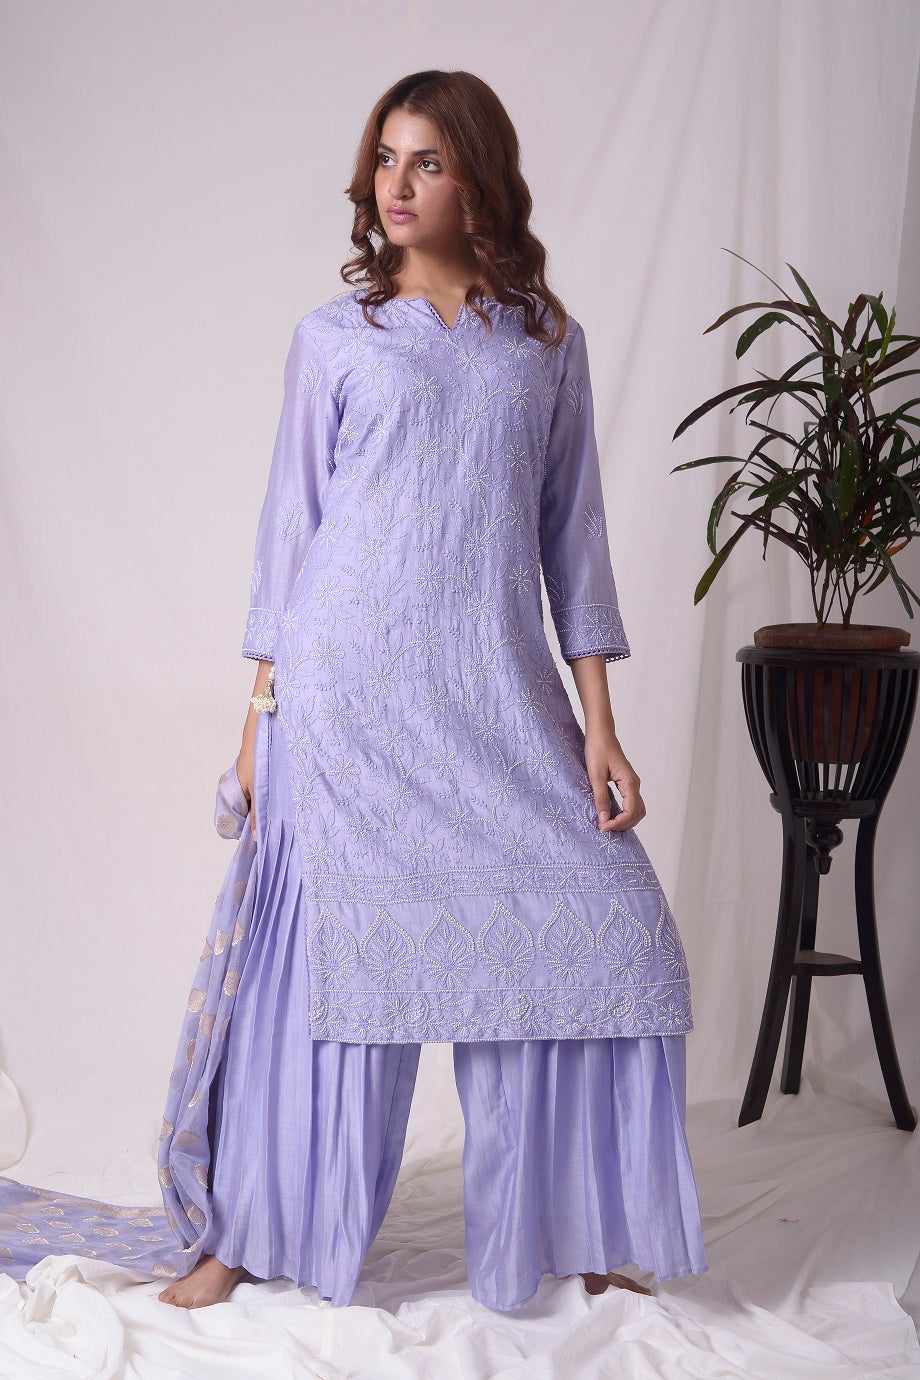 Buy blue chanderi suit online in USA with pearl work. Buy grey lucknowi suit online in USA with pearl work. Be the talk of parties and weddings with exquisite designer gowns, Indian suits, Anarkali dresses, Indo-western dresses from Pure Elegance Indian clothing store in USA .Shop online now.-full view-3